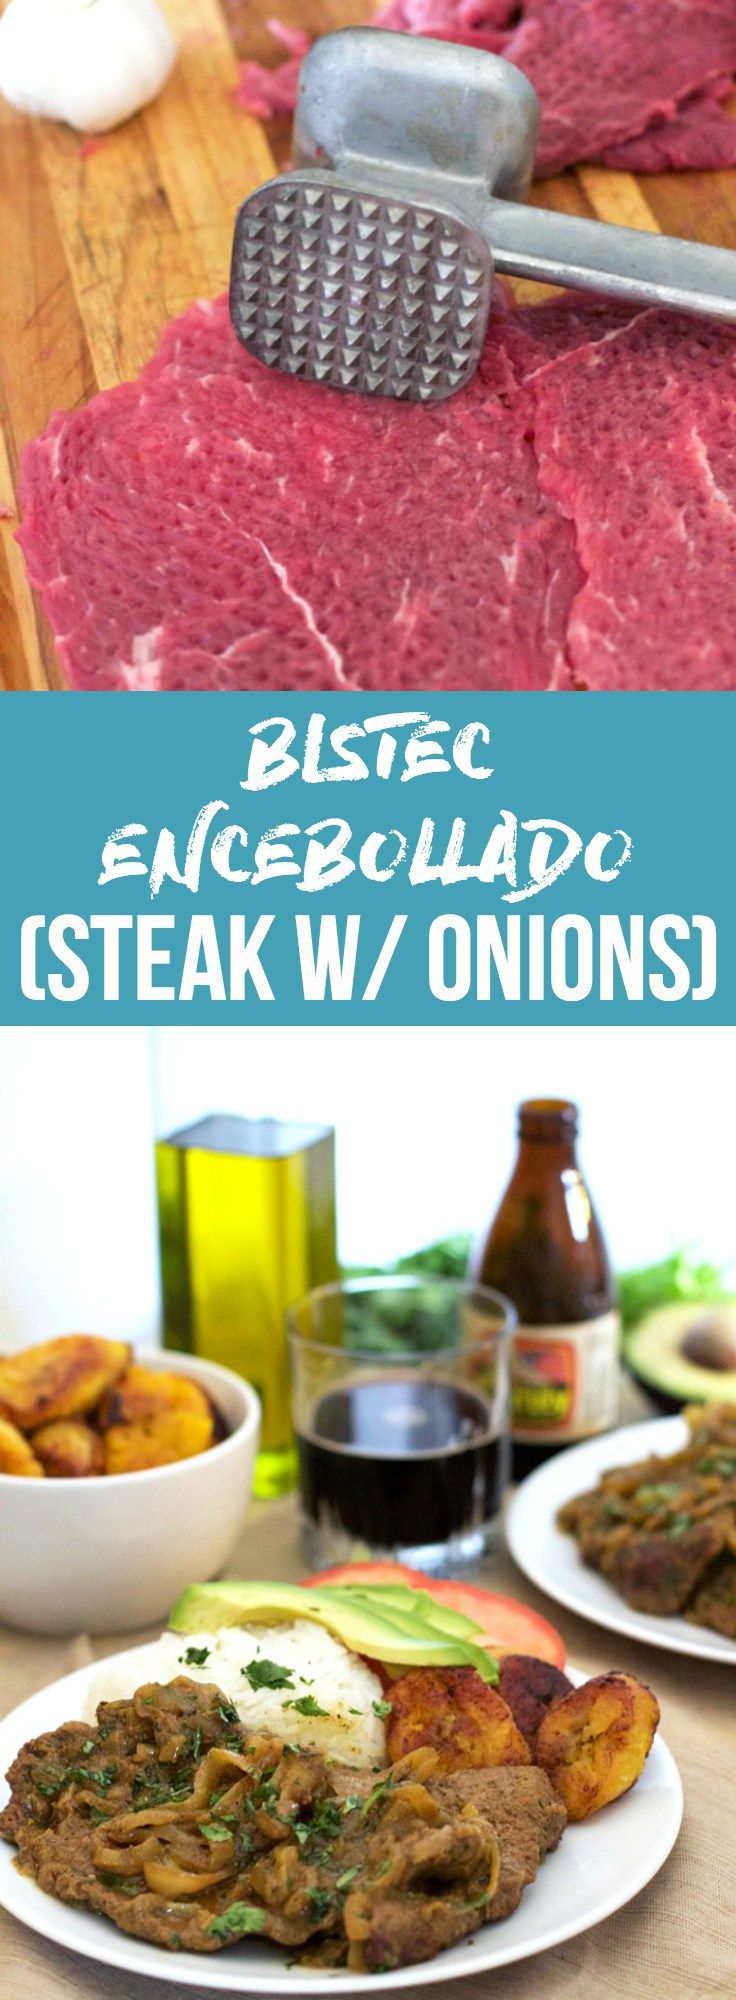 BISTEC ENCEBOLLADO (STEAK W/ ONIONS) — This Cuban Steak with Onions dish is jam packed full of delicious flavors! It's tender, savory, and sure to make any abuela proud | bitsofumami.com